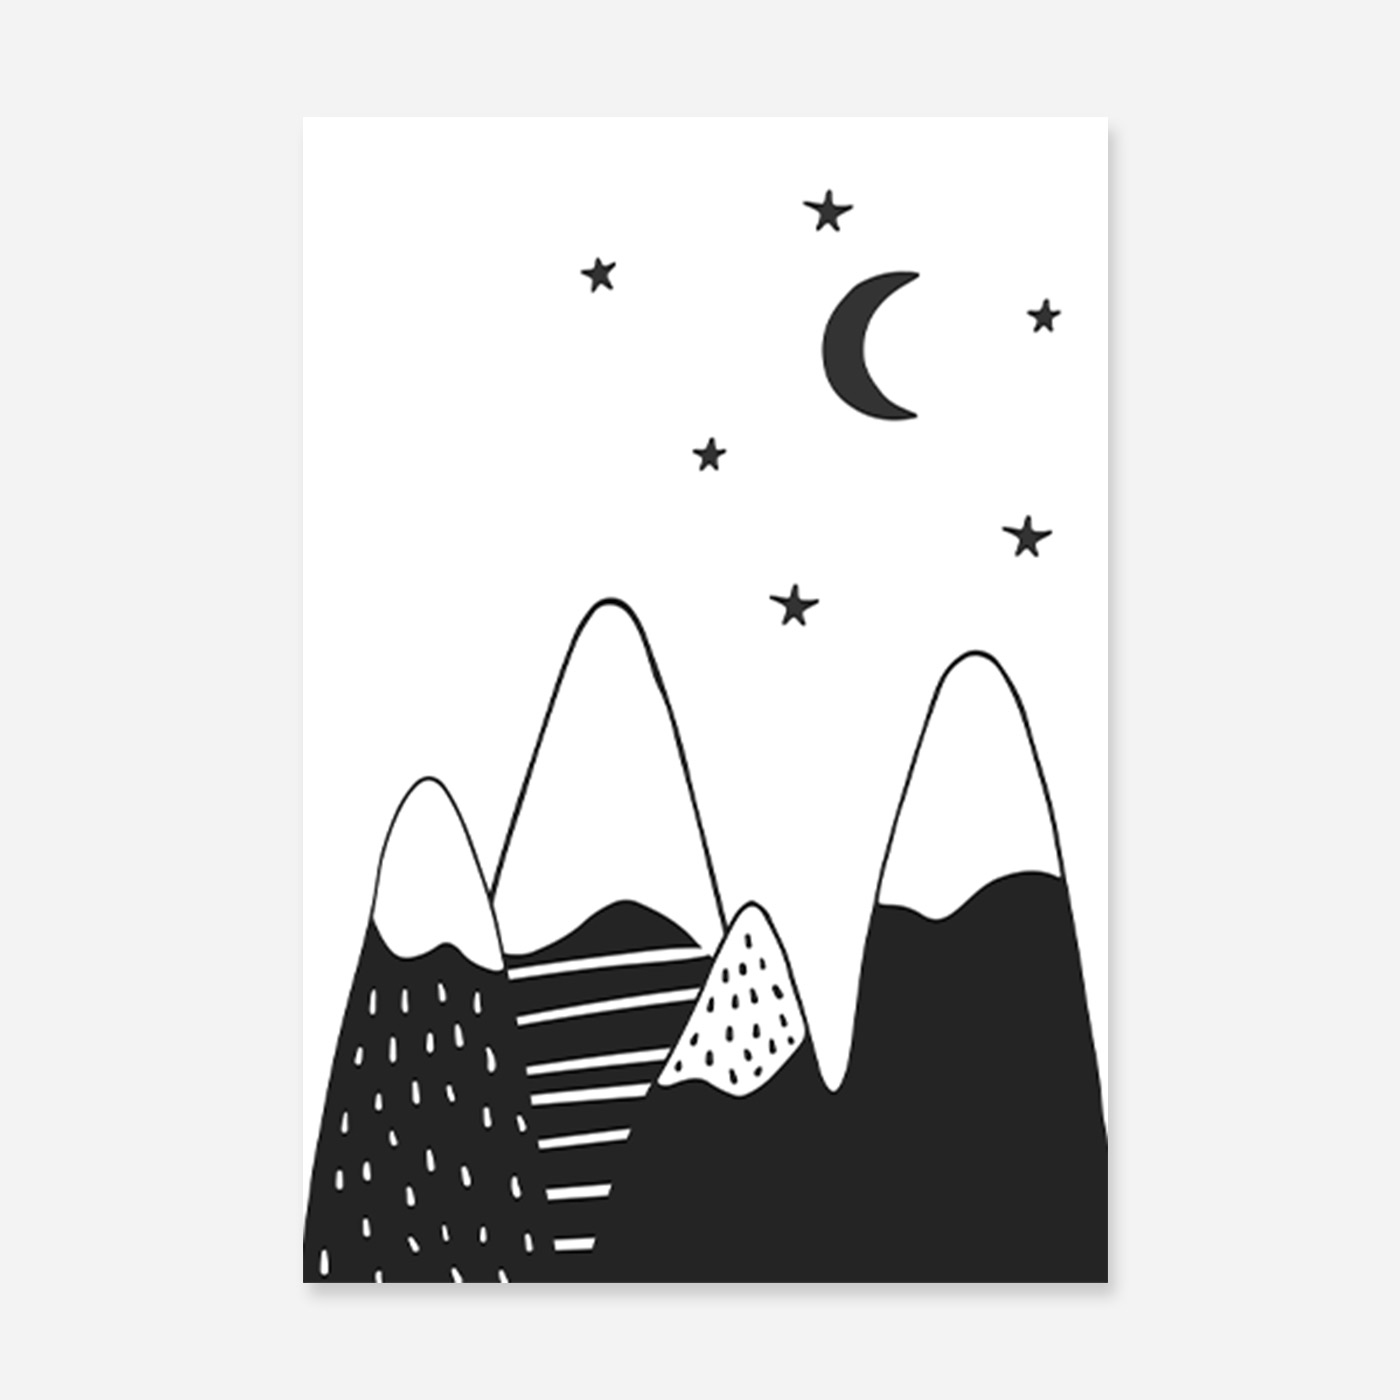 back and white mountains on a starry night.